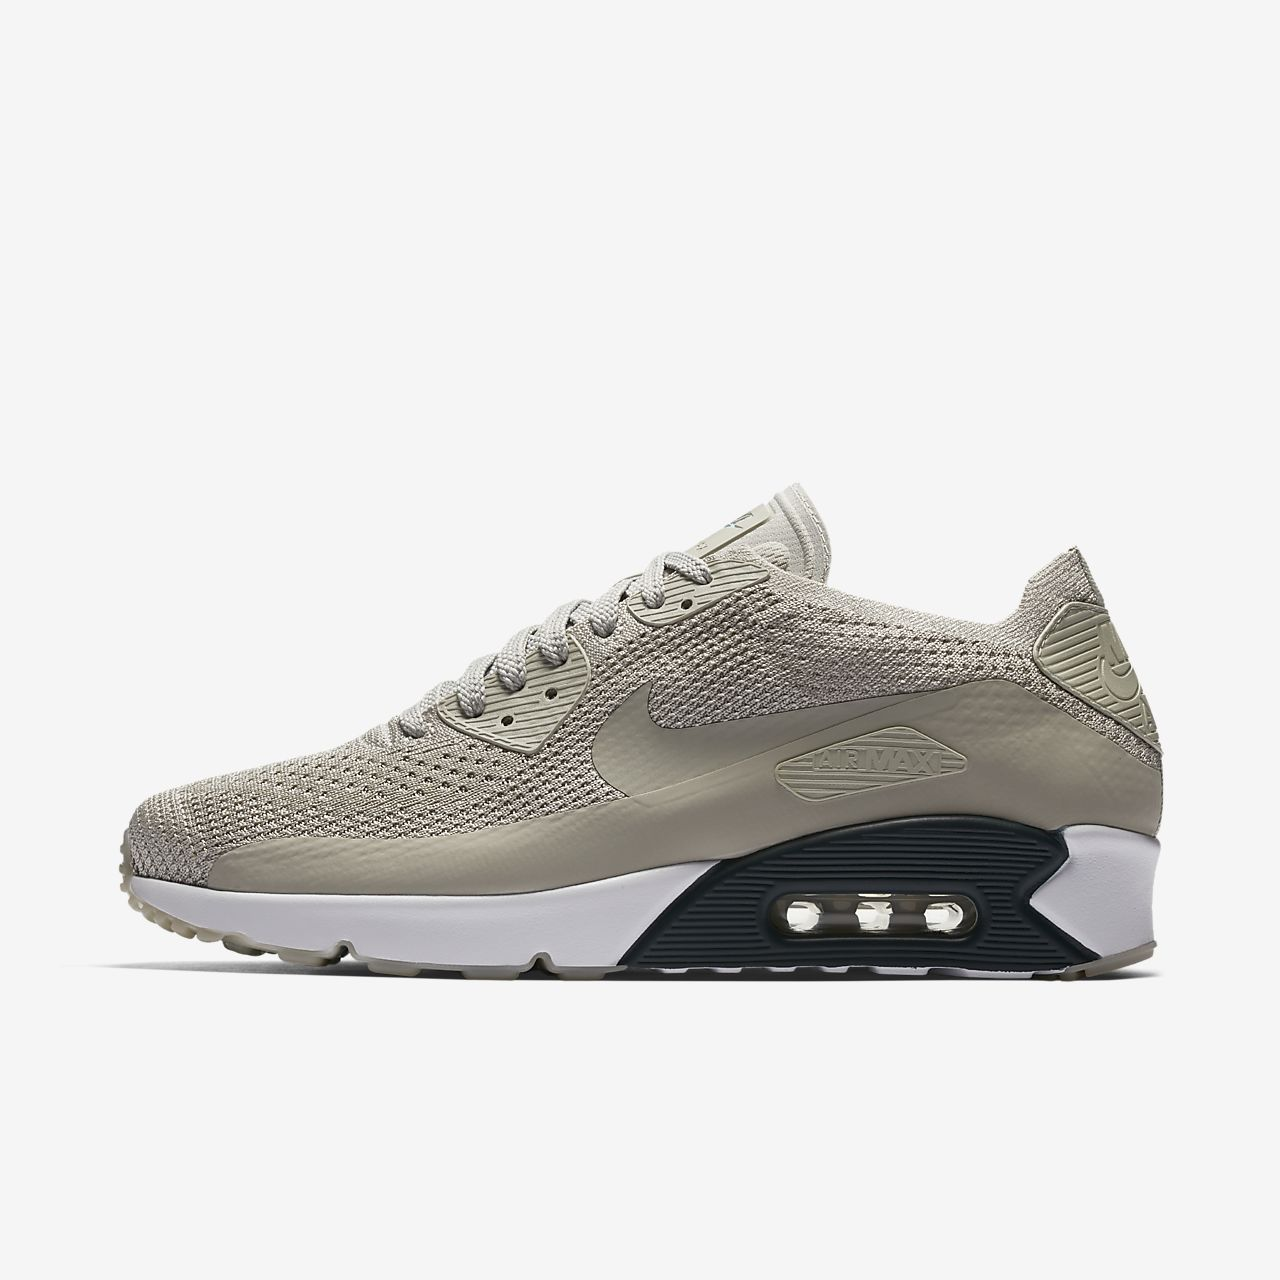 separation shoes 94089 23cec nike air max 90 ultra